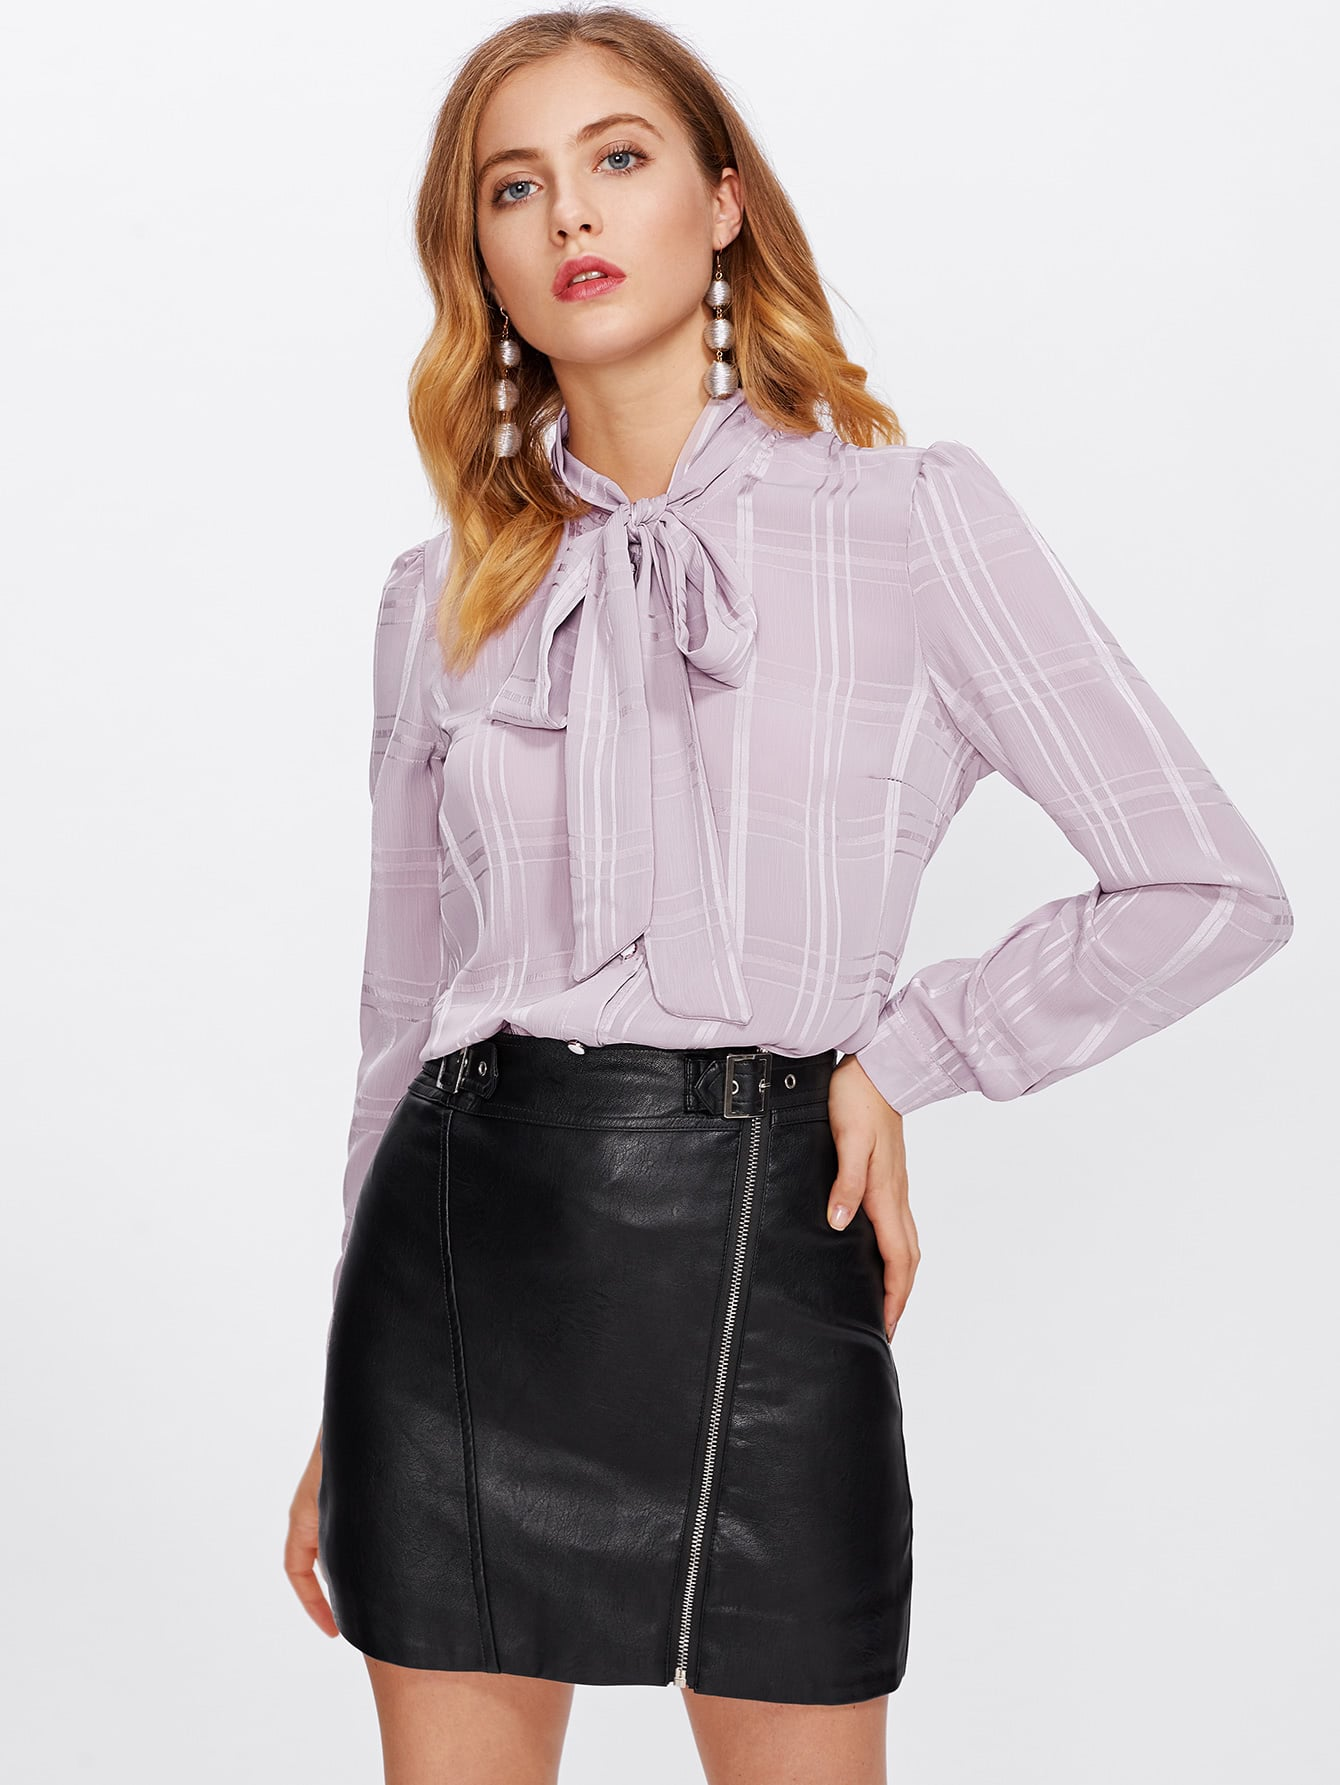 Bow Tie Neck Curved Hem Blouse self tie neck cuffded sleeves curved hem blouse